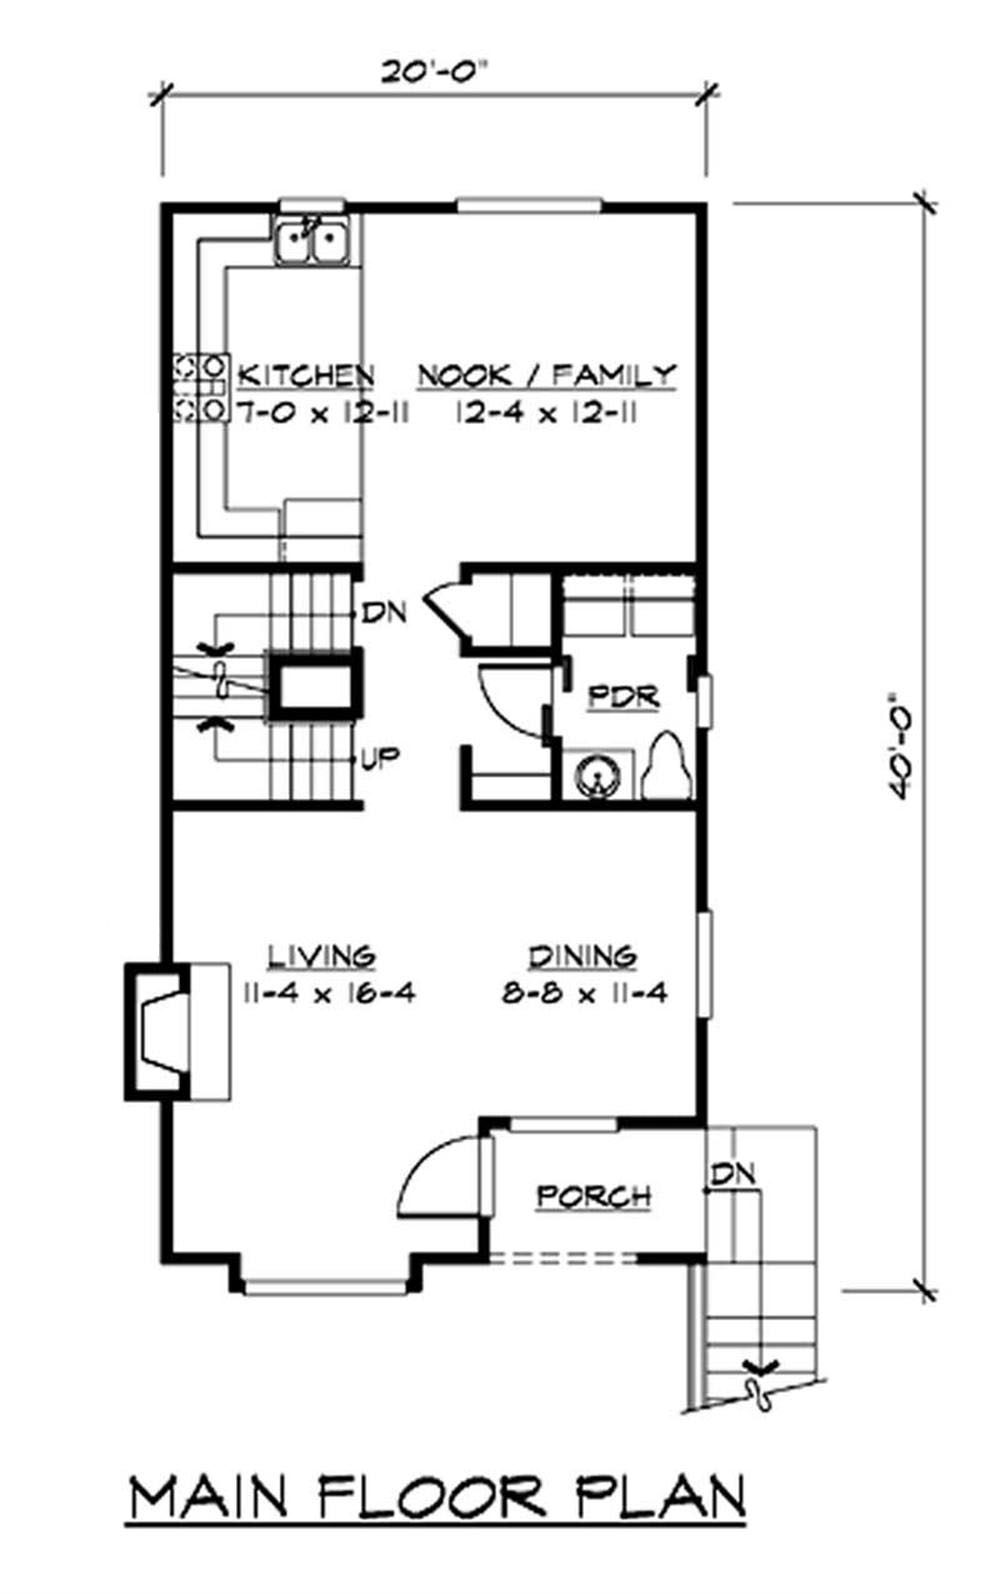 Multi level small home with 4 bedrms 1488 sq ft plan for Multi level home plans